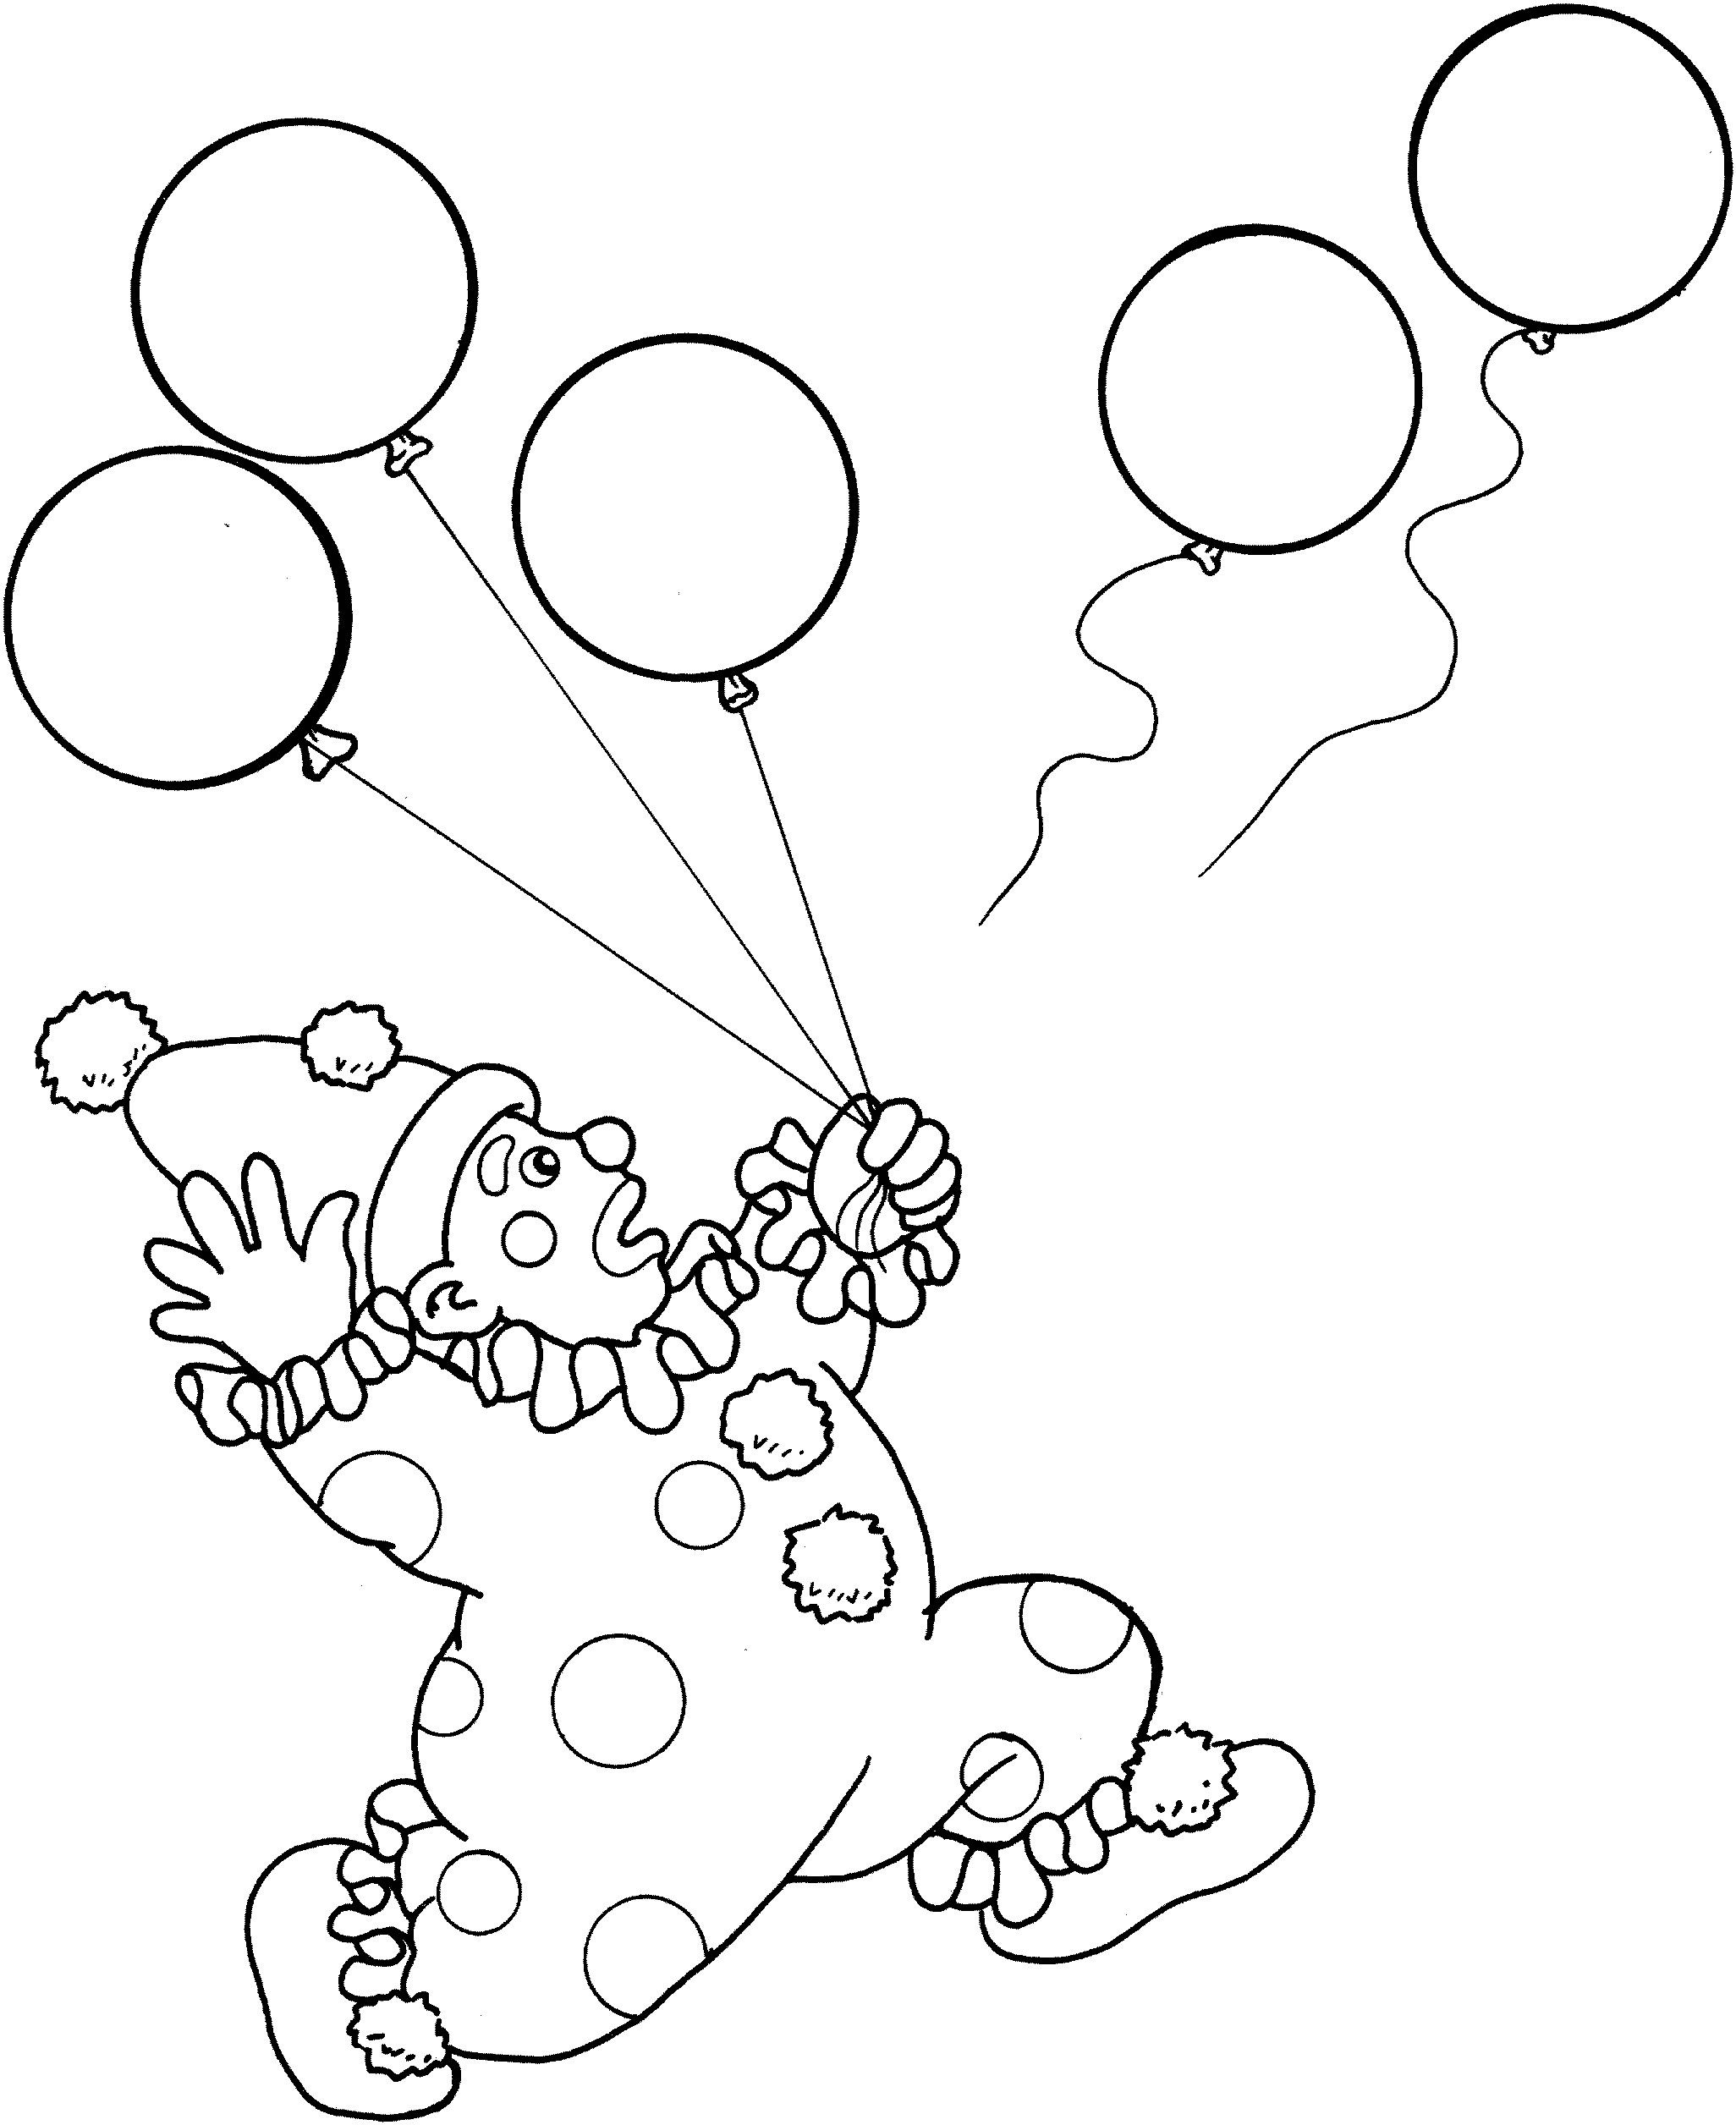 Circus Free To Color For Children Circus Coloring Pages For Kids